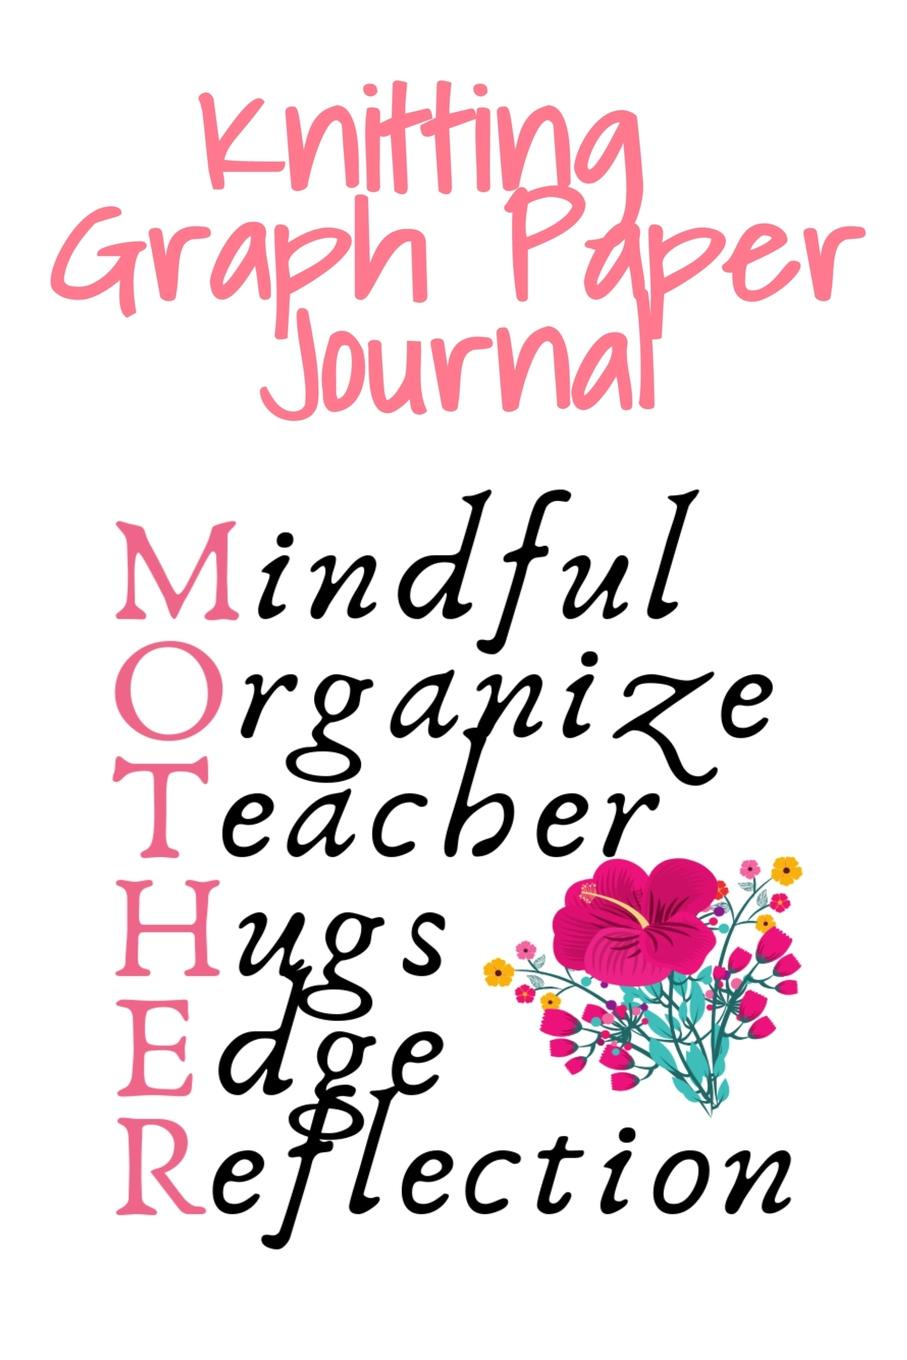 Jennifer Wellington Knitting Graph Paper Journal Mother. Mindful, Organize, Teacher, Hugs, Edge, Reflection . Mother - Needlework Gift For Mom Who Loves To Knit - 6x9 Inches, 120 Pages super stitches knitting